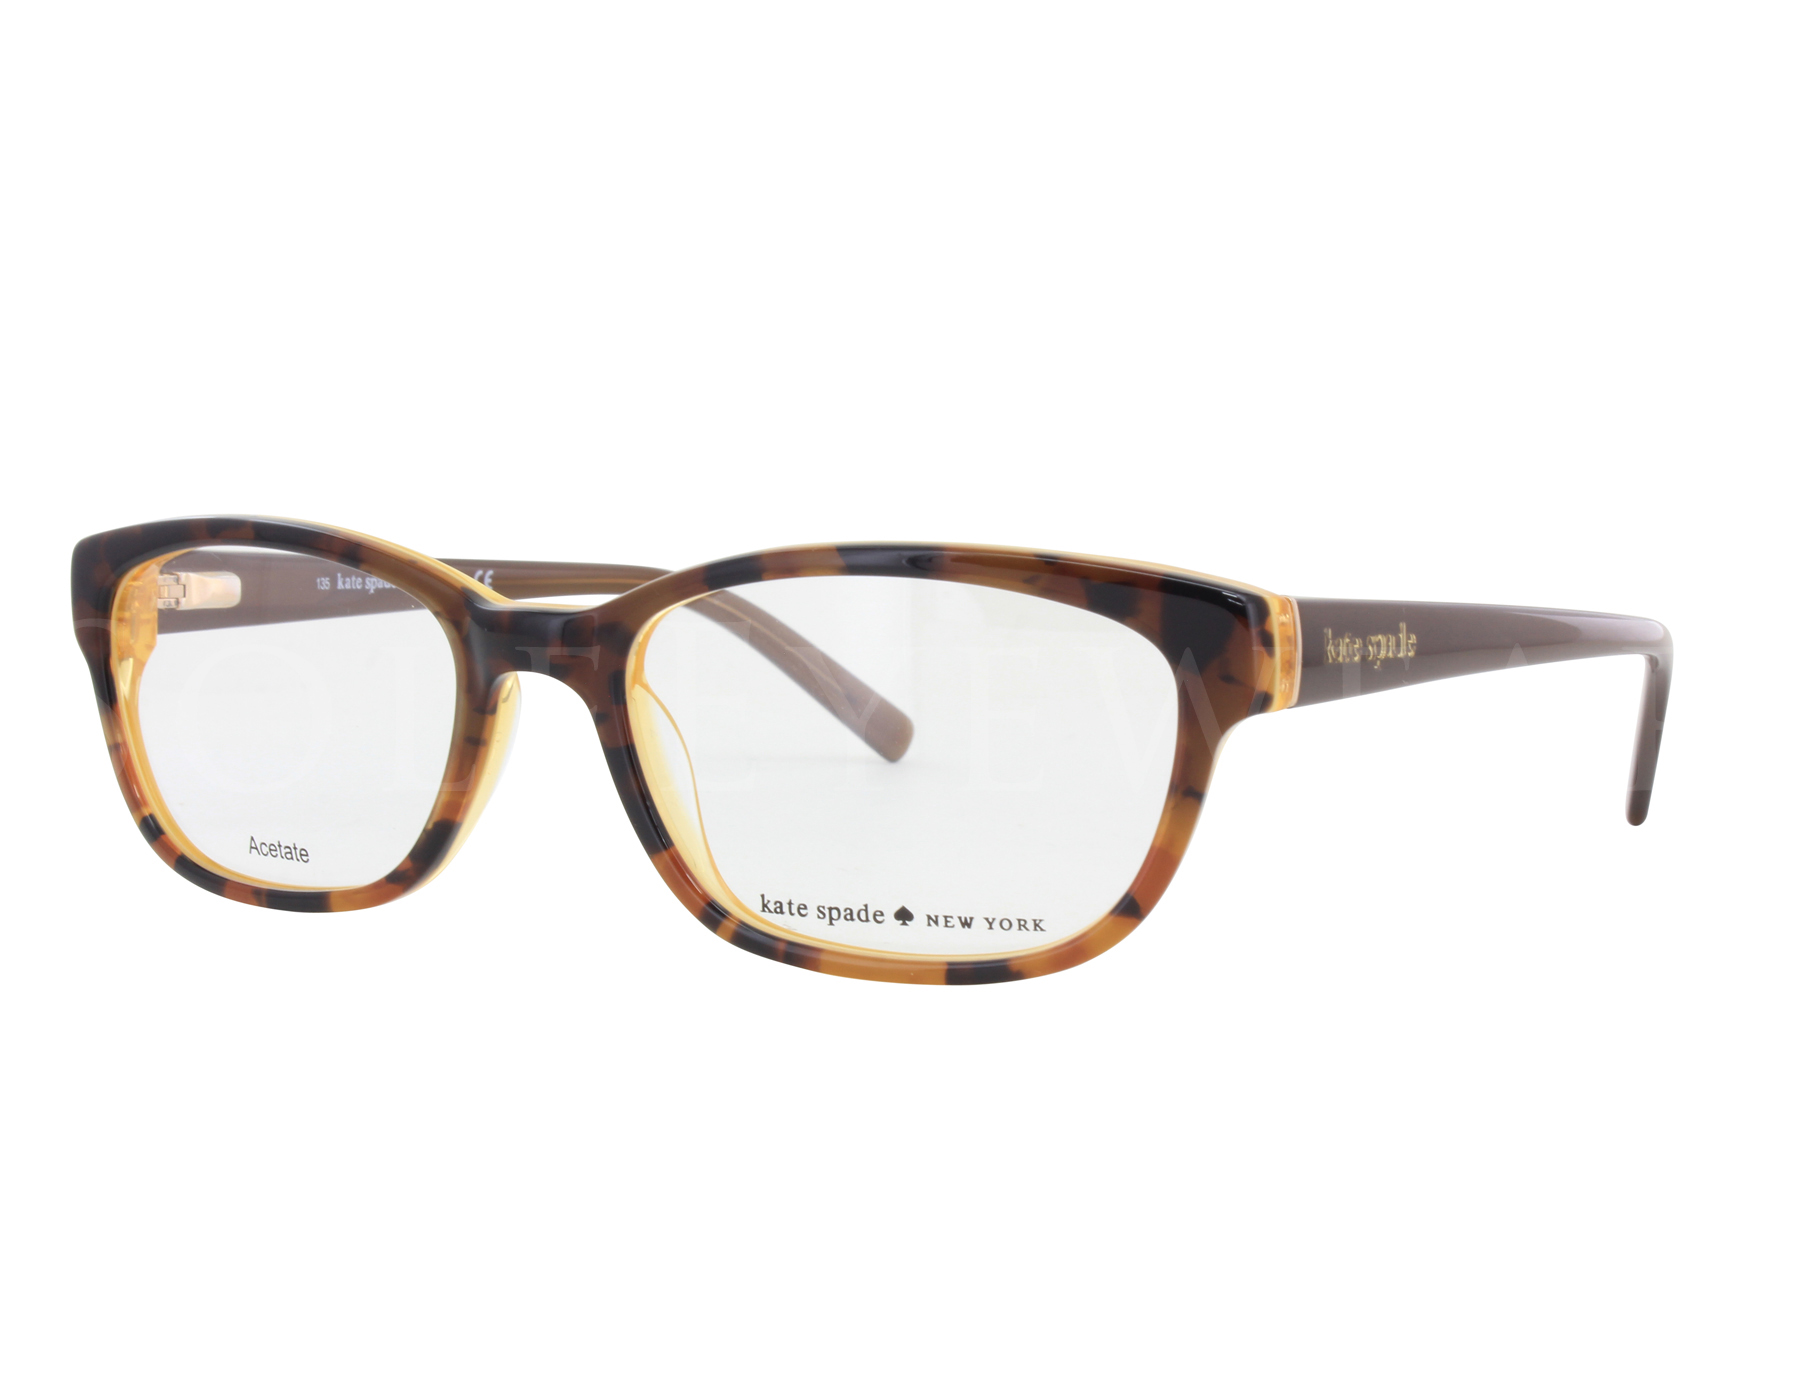 d6dbbb3d14 Details about NEW Kate Spade BLAKELY 0JMD 50mm Tortoise Gold Optical Eyeglasses  Frames